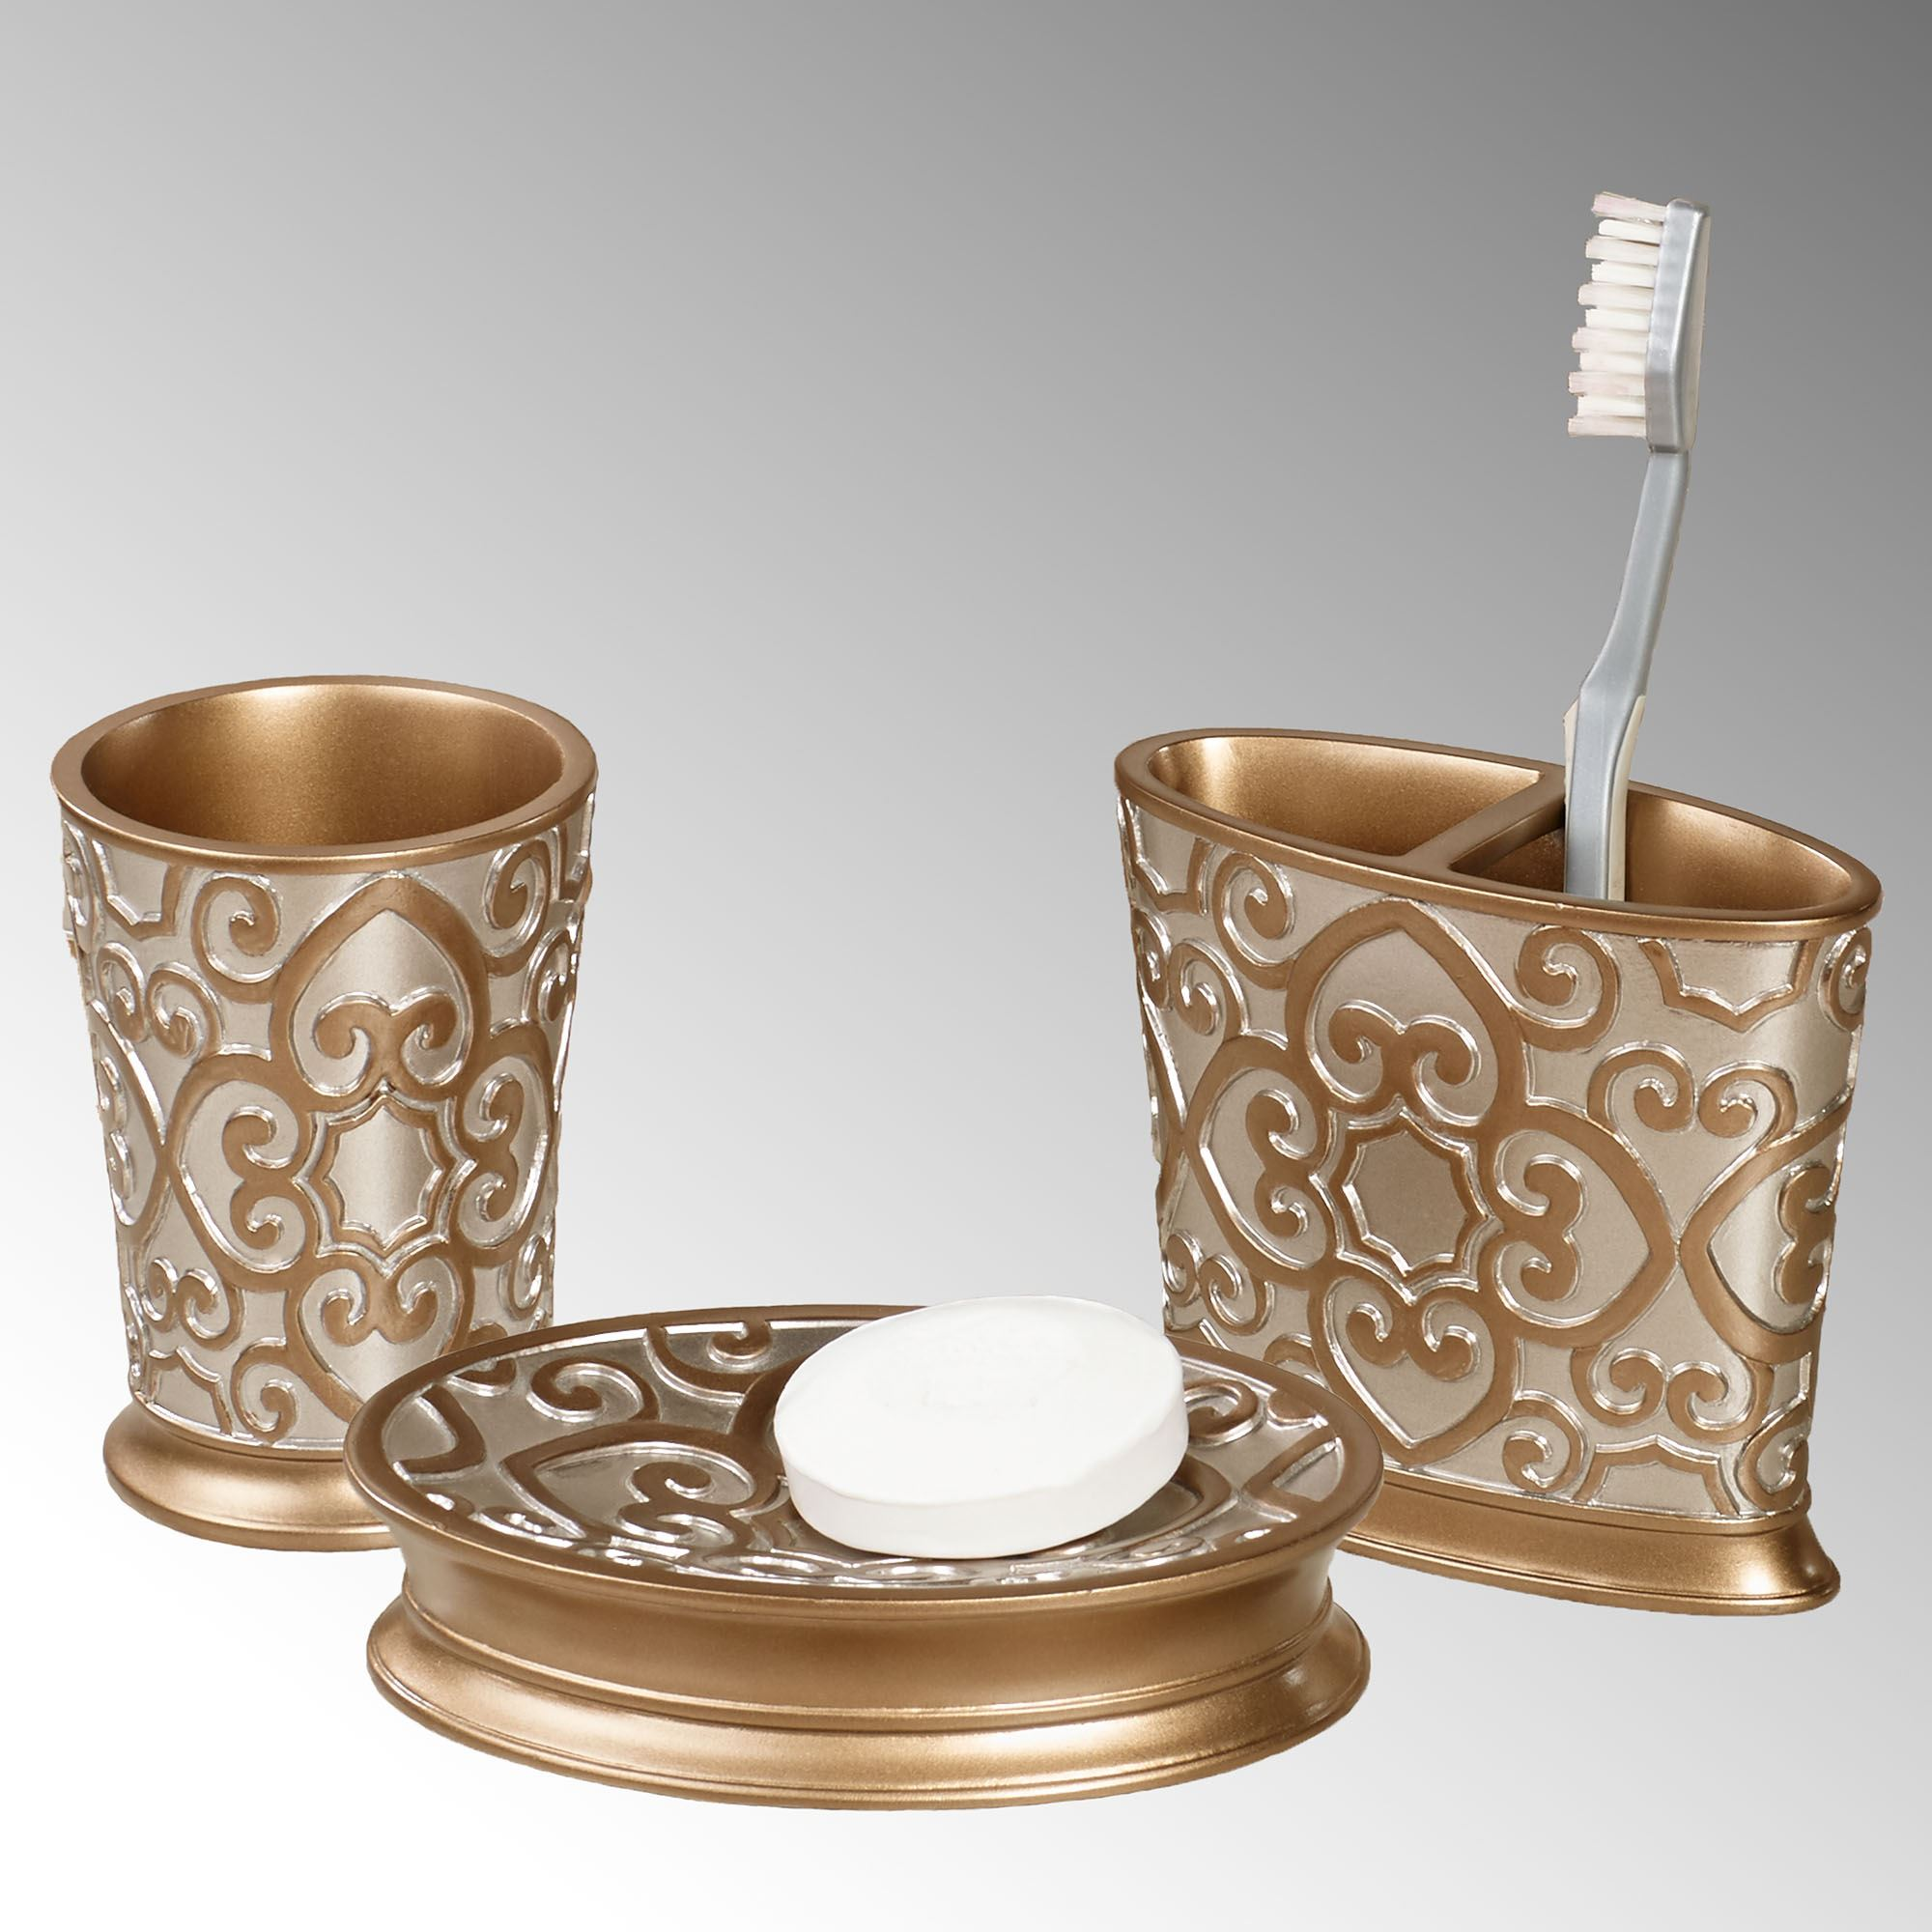 Shower Bathroom Sets: Allure Silver And Gold Bath Accessories